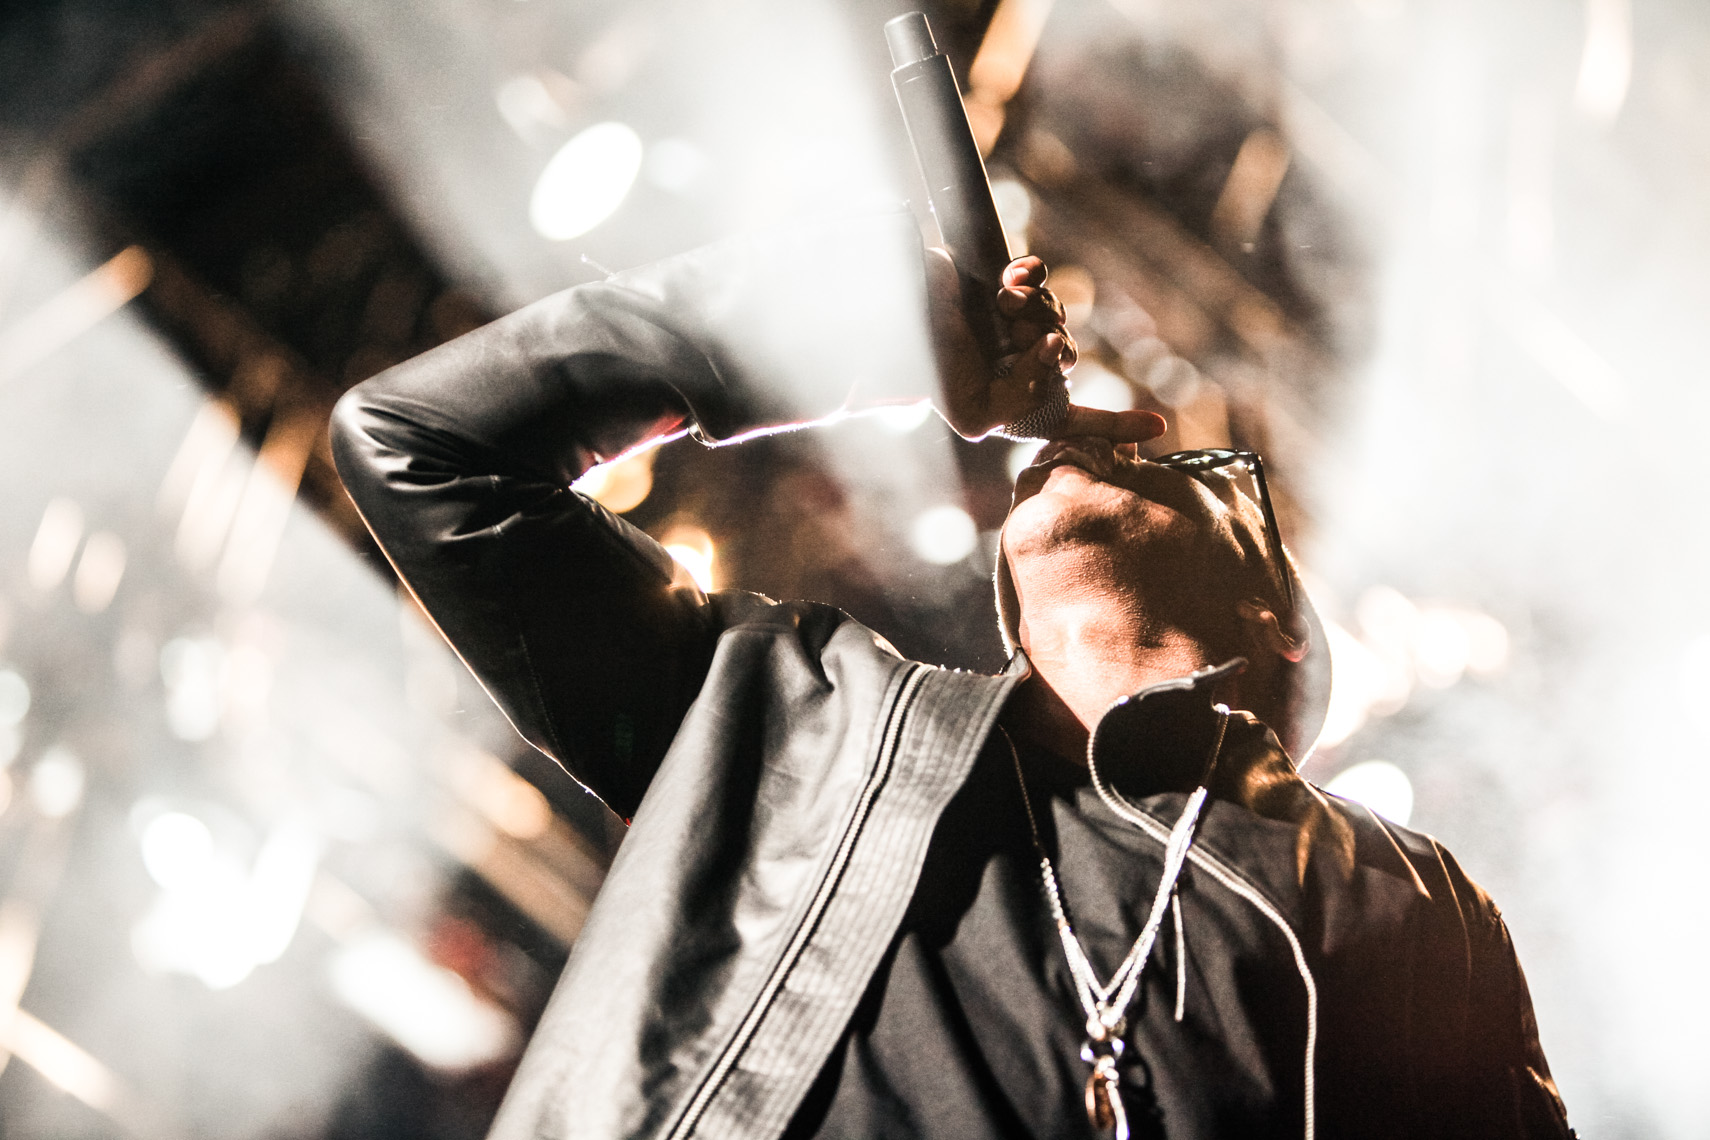 Jay Z at Coachella Music Festival photographed by Forest Woodward